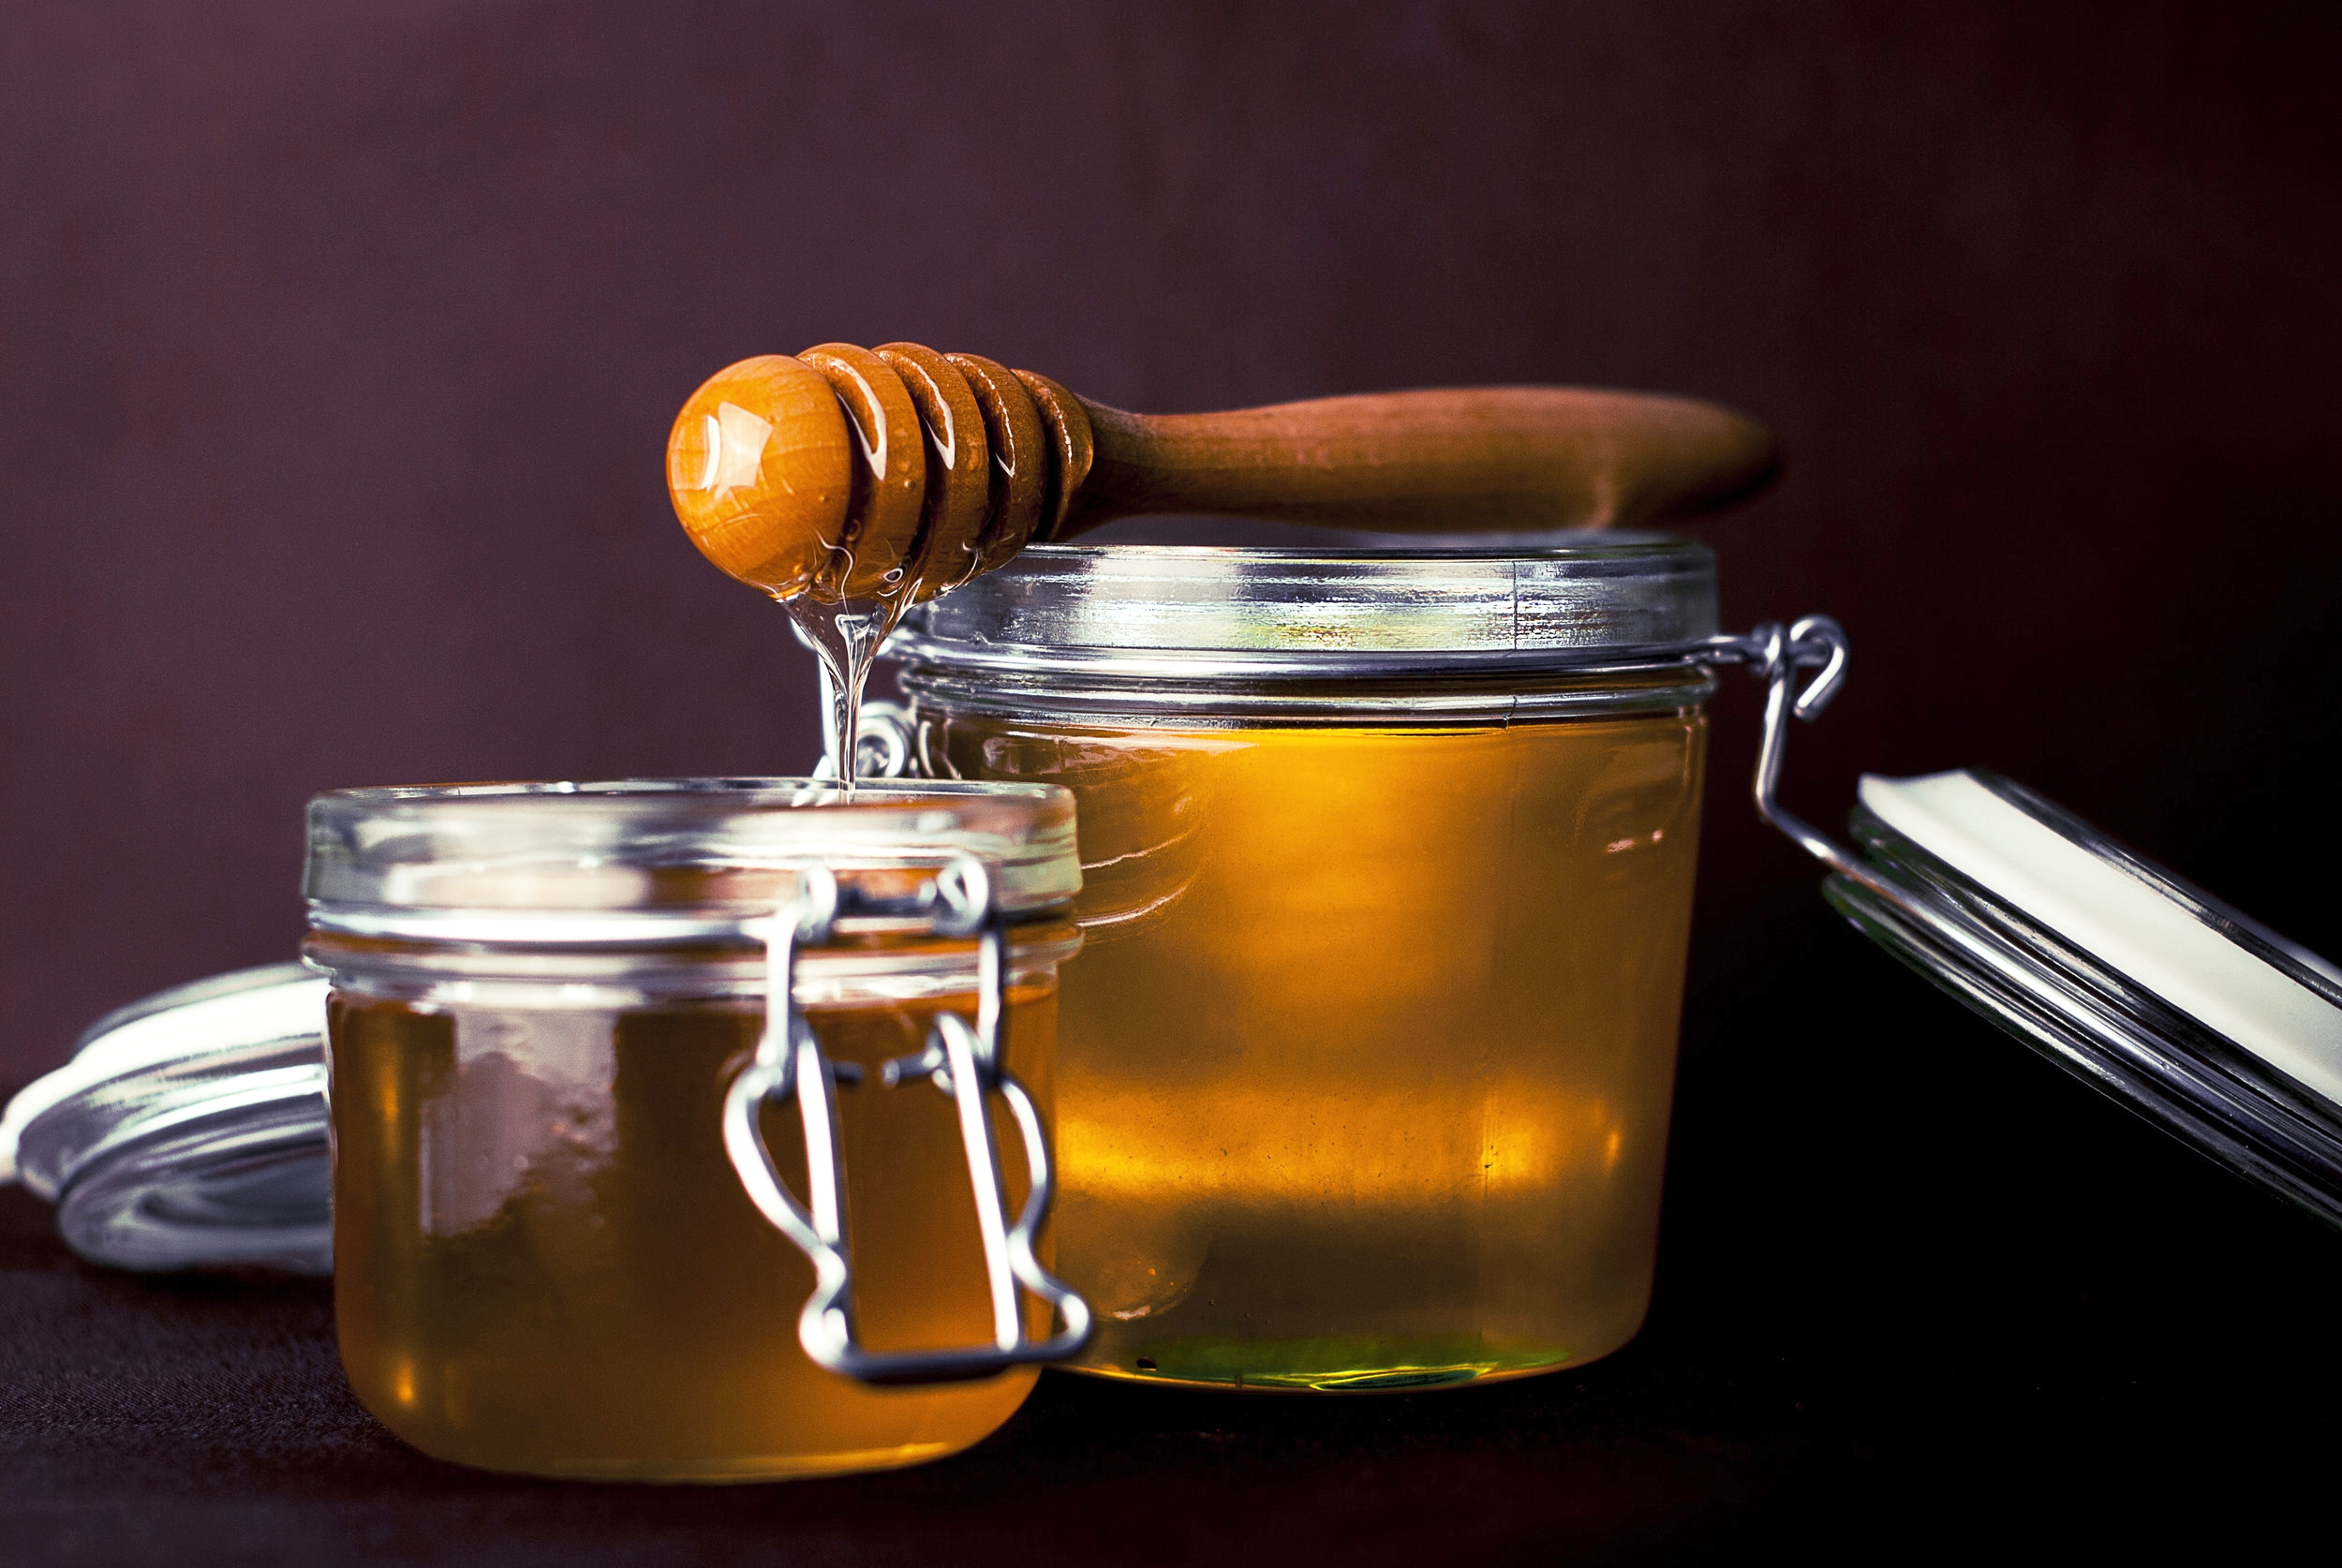 spoon-honey-jar (2).jpg